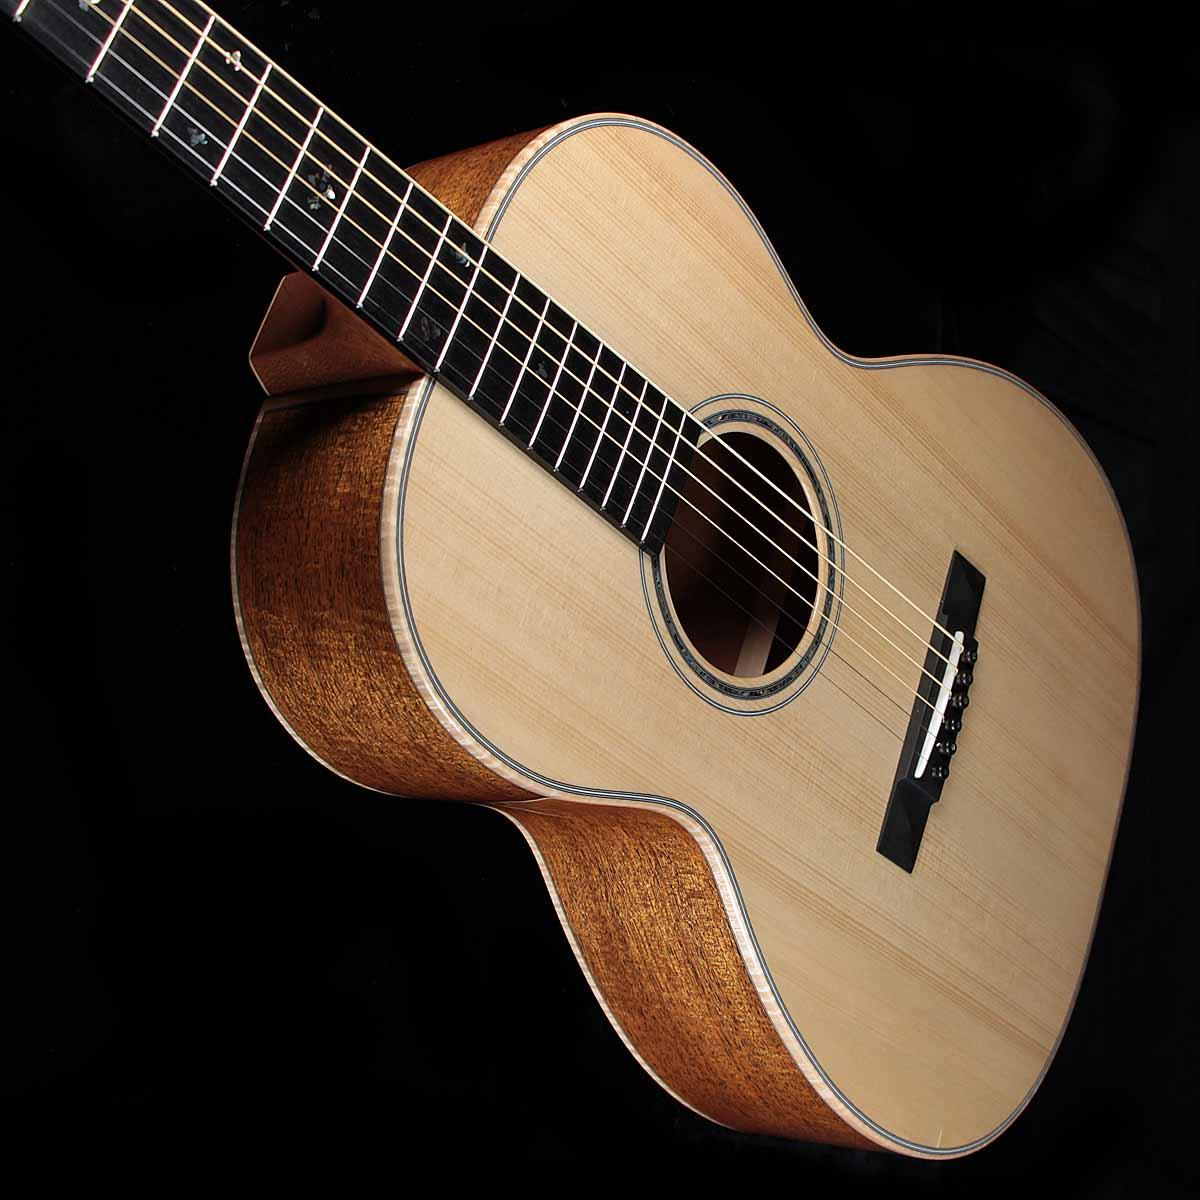 Lefthanded Froggy Bottom H12 Deluxe Lefty Guitars Only